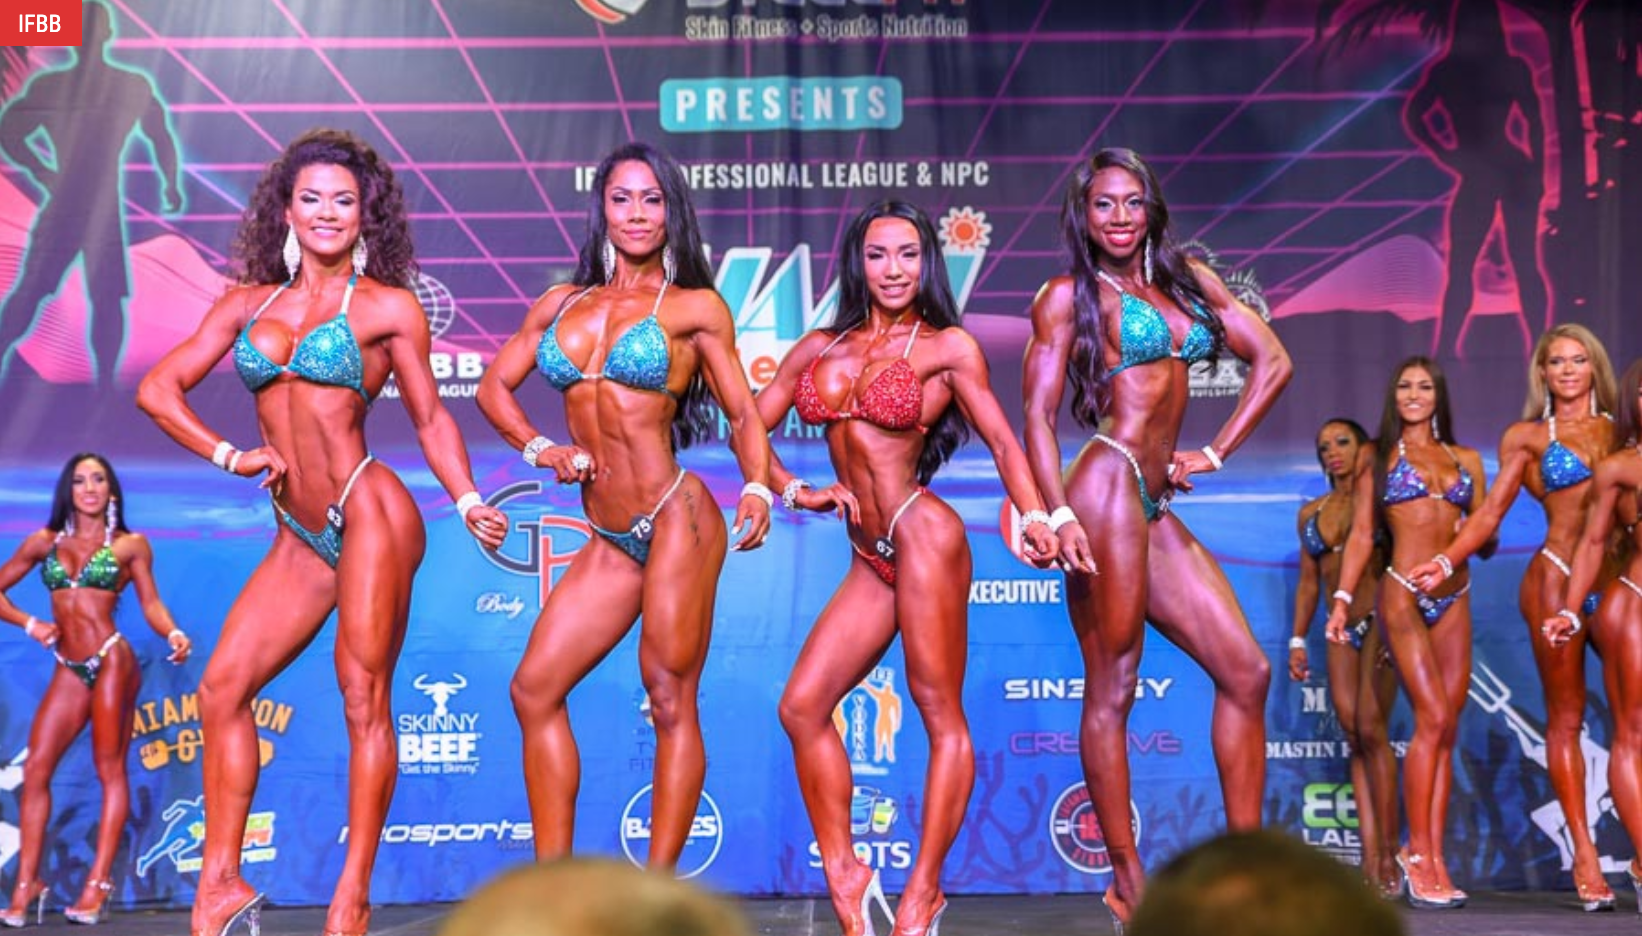 NPC NEWS ONLINE - IFBB MIAMI MUSCLE BEACH PRO PHOTOS & RESULTS